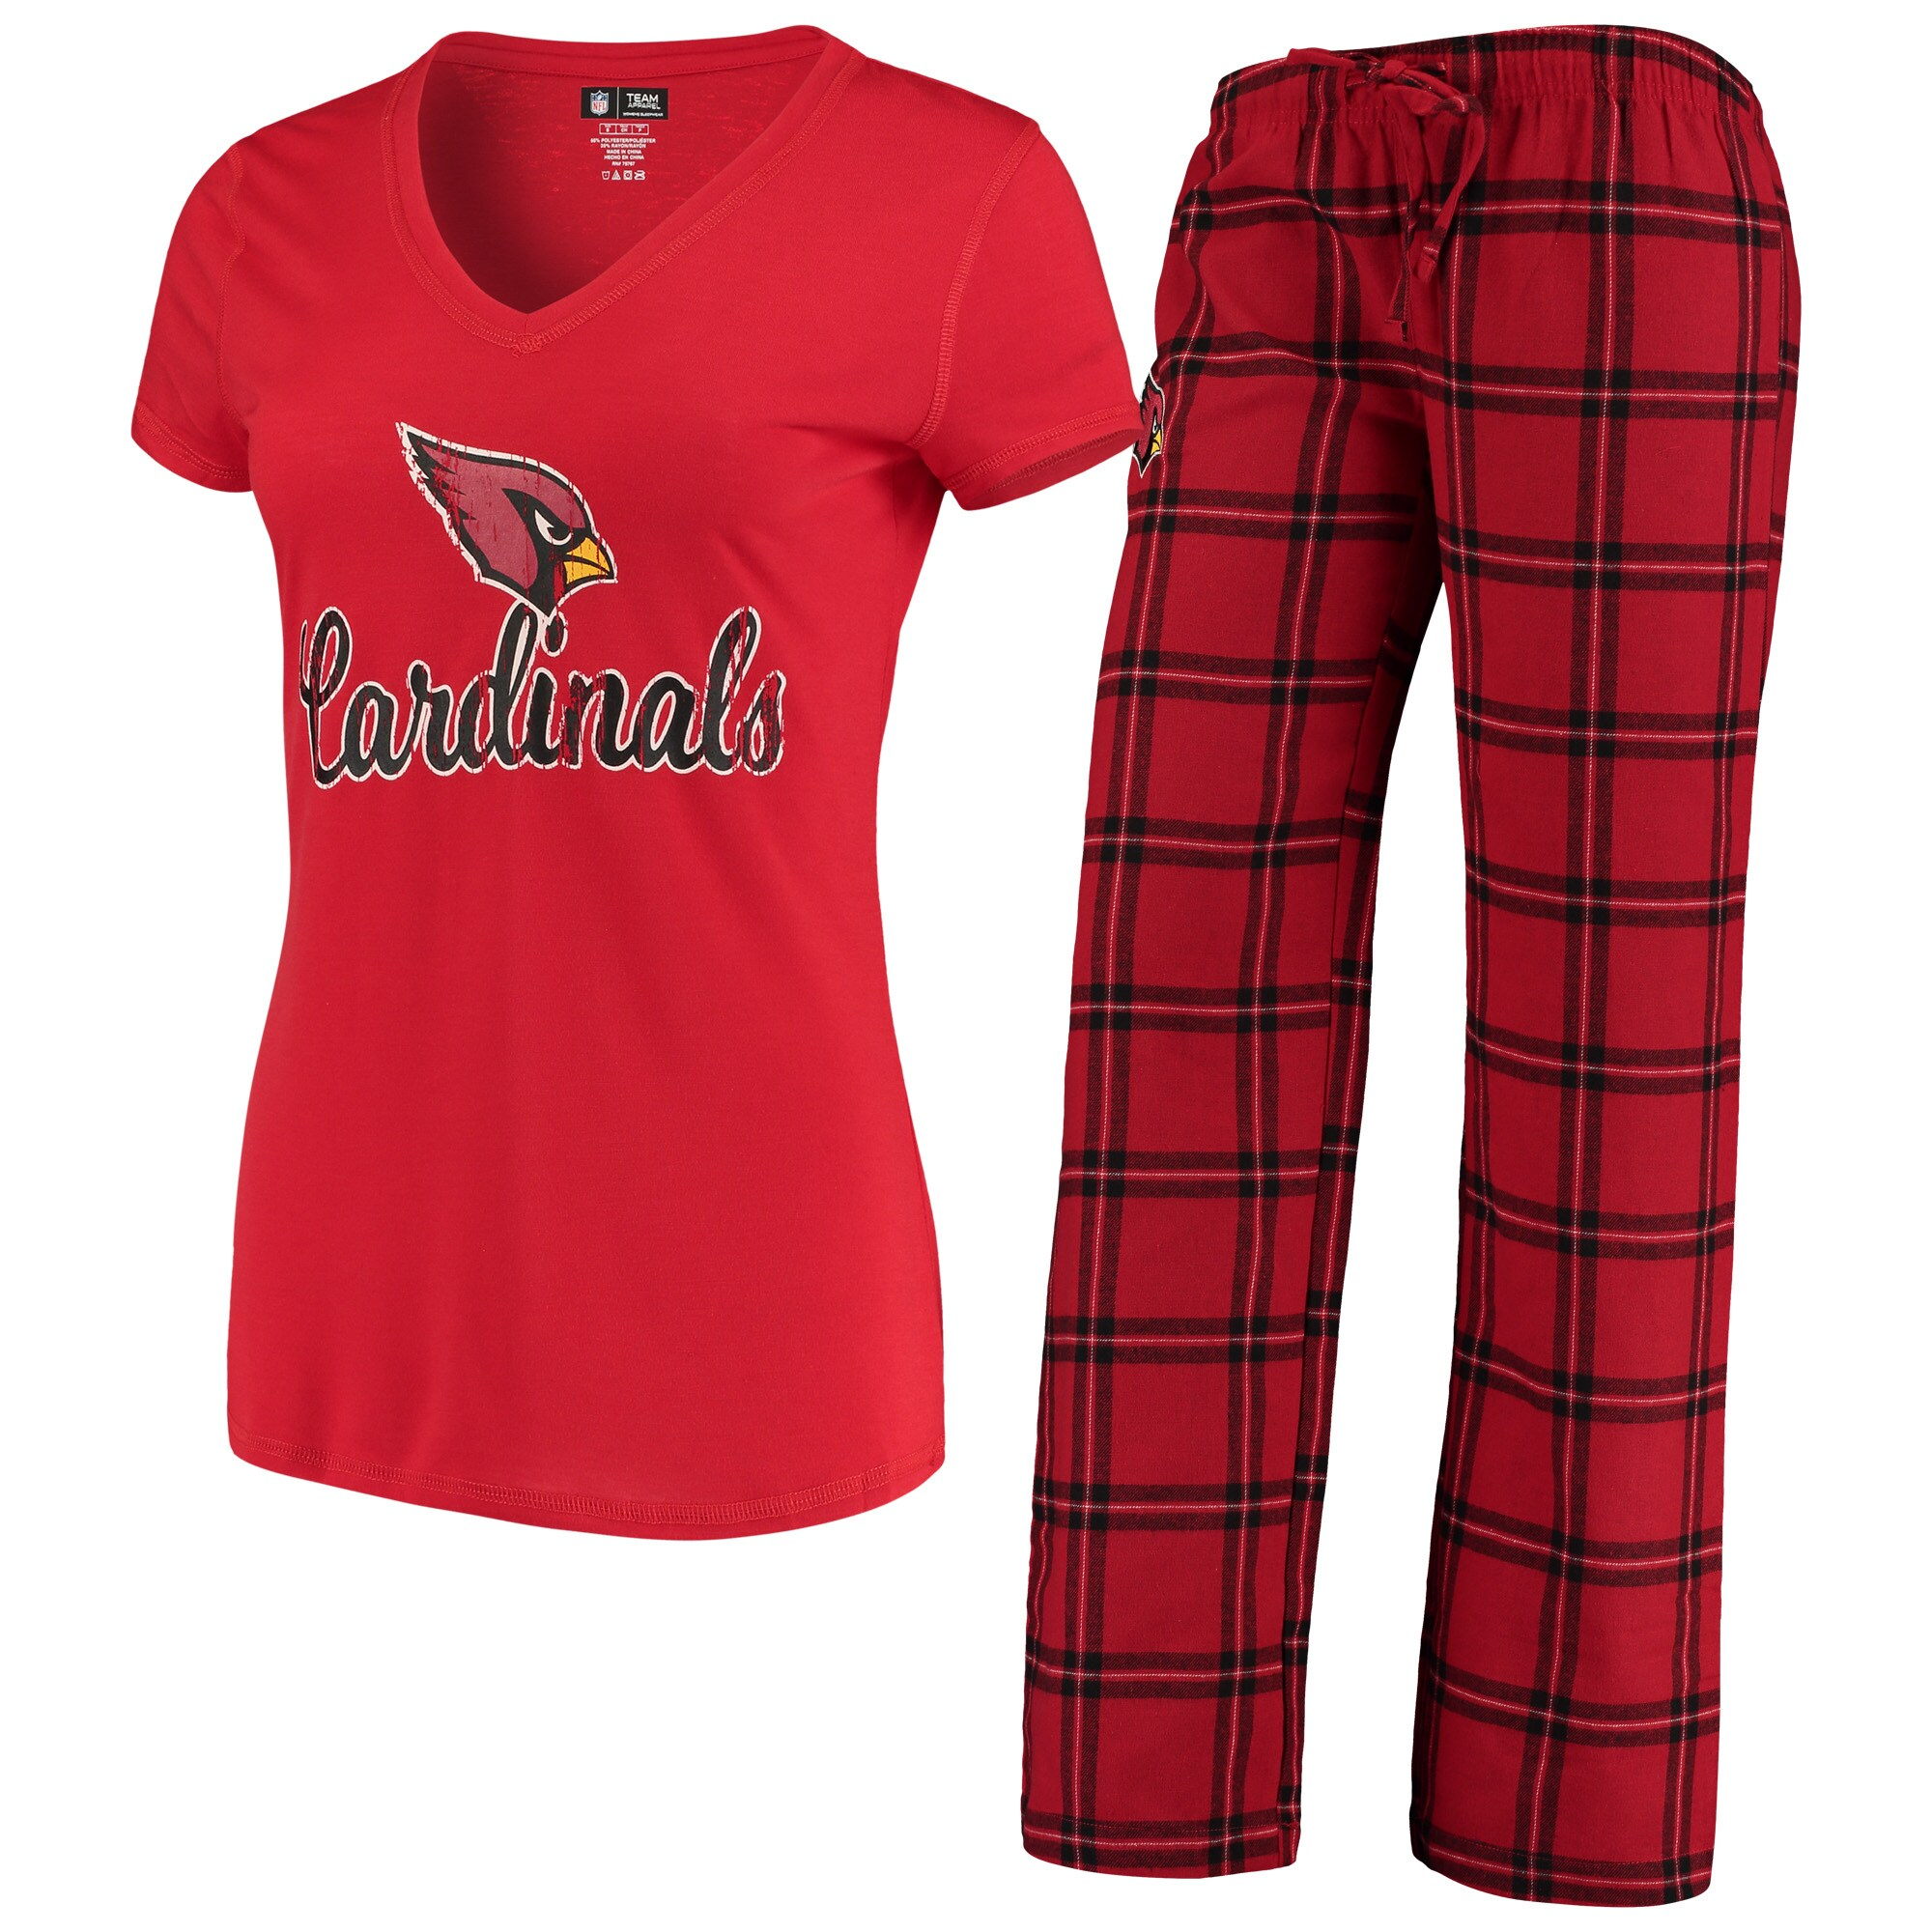 Arizona Cardinals Concepts Sport Women's Troupe V-Neck T-Shirt & Pants Sleep Set - Cardinal/Black